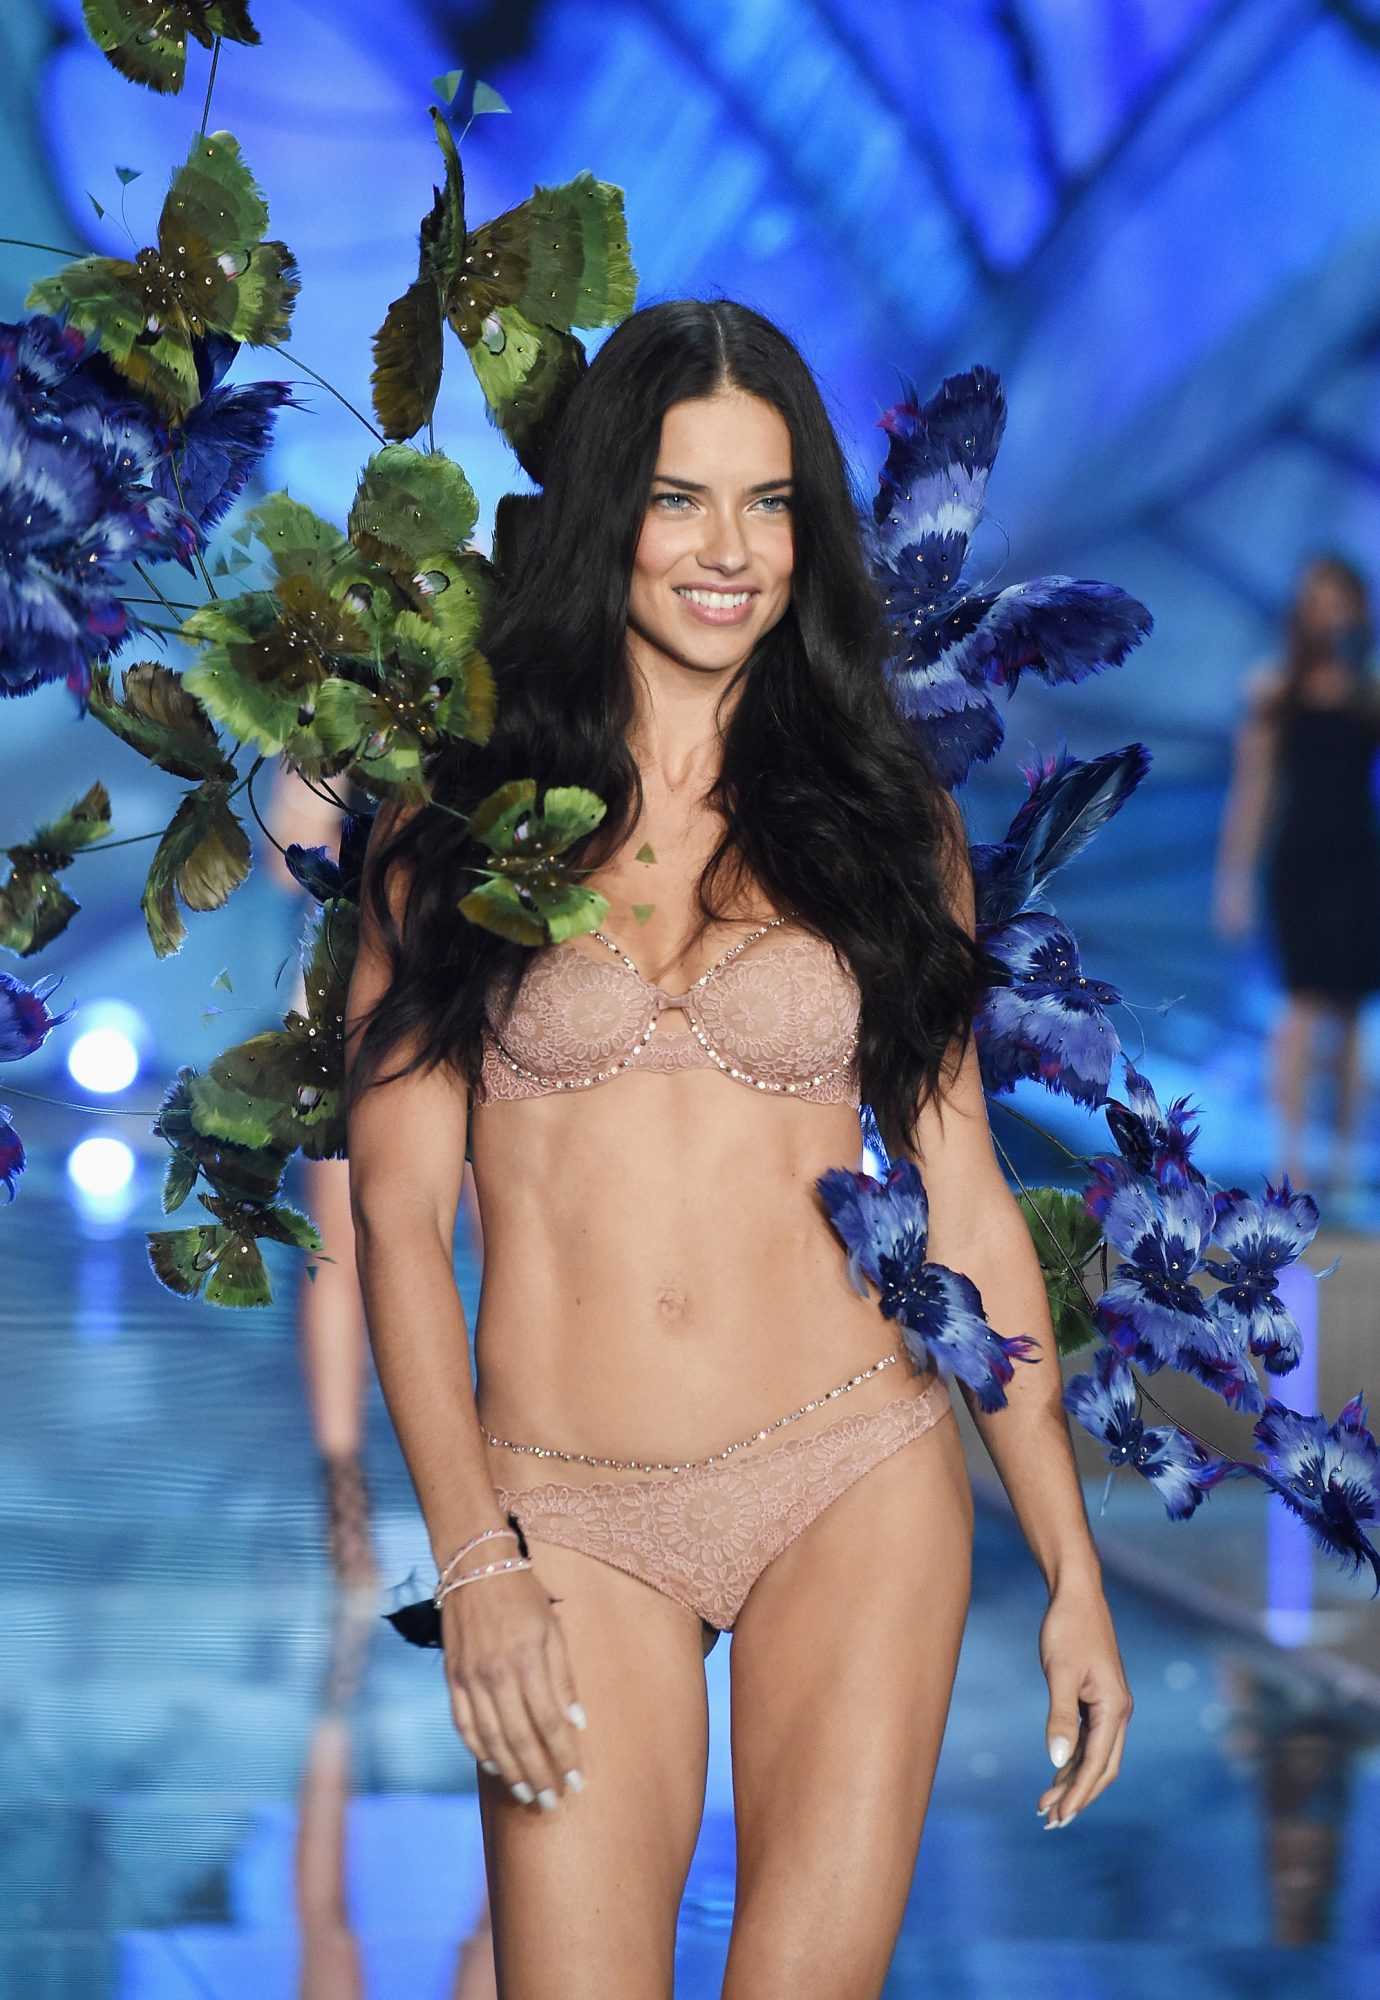 Adriana Lima - 2015 Victoria's Secret Fashion Show - November 10, 2015